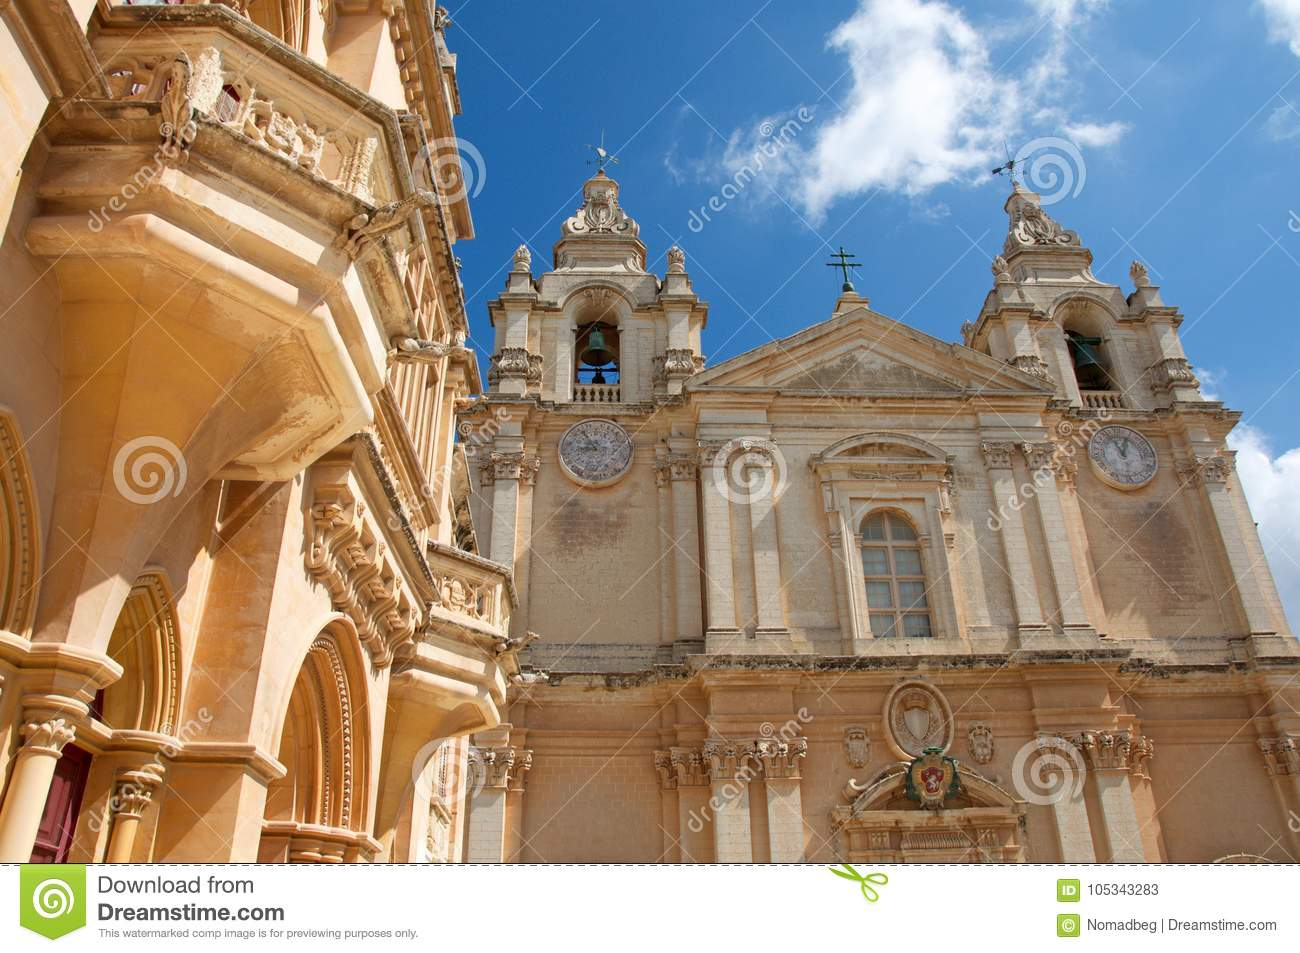 malta mdina luxury baroque architecture stock image image of luxury cathedral 105343283. Black Bedroom Furniture Sets. Home Design Ideas